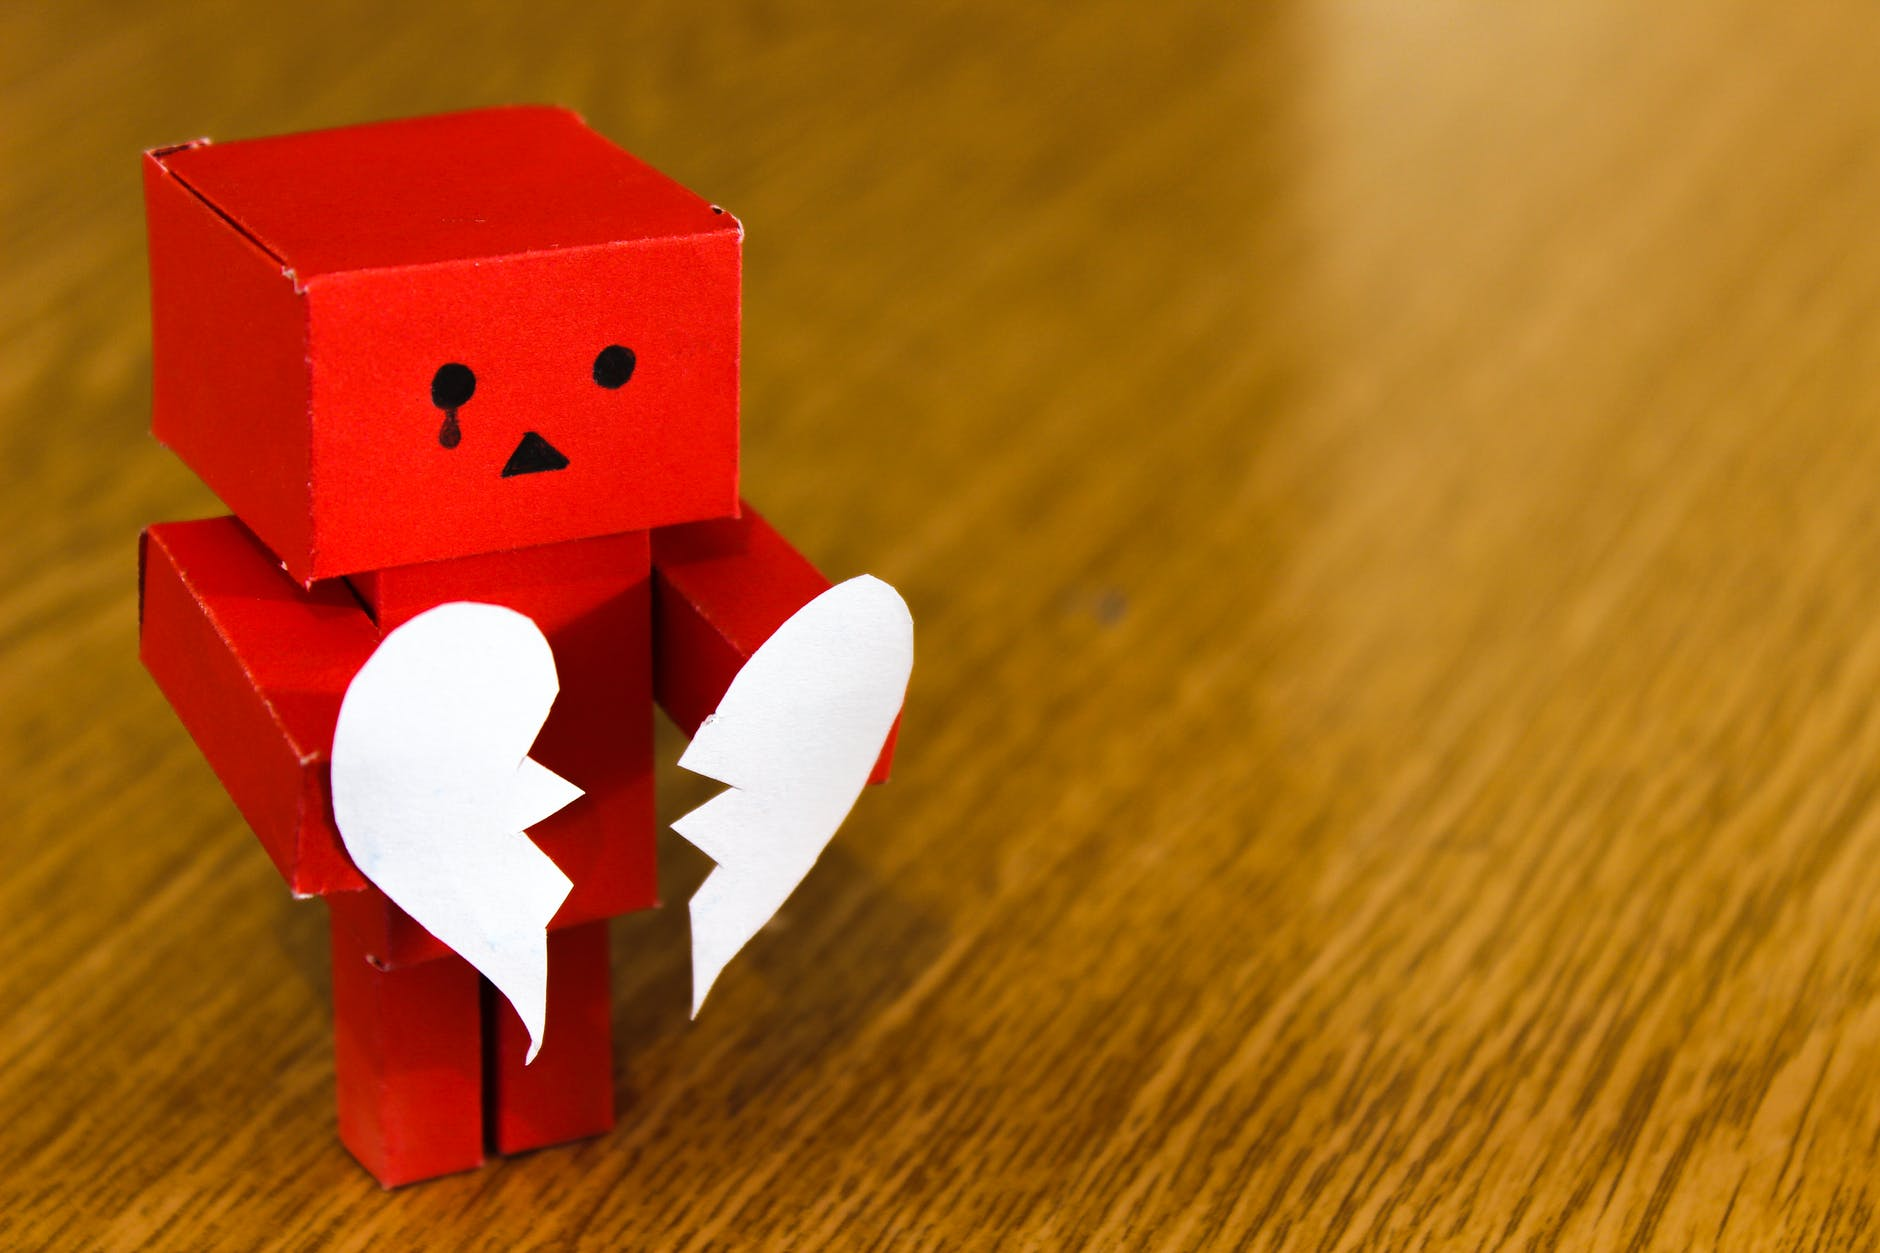 red cardboard robot with a tear in his eye holding a paper broken heart